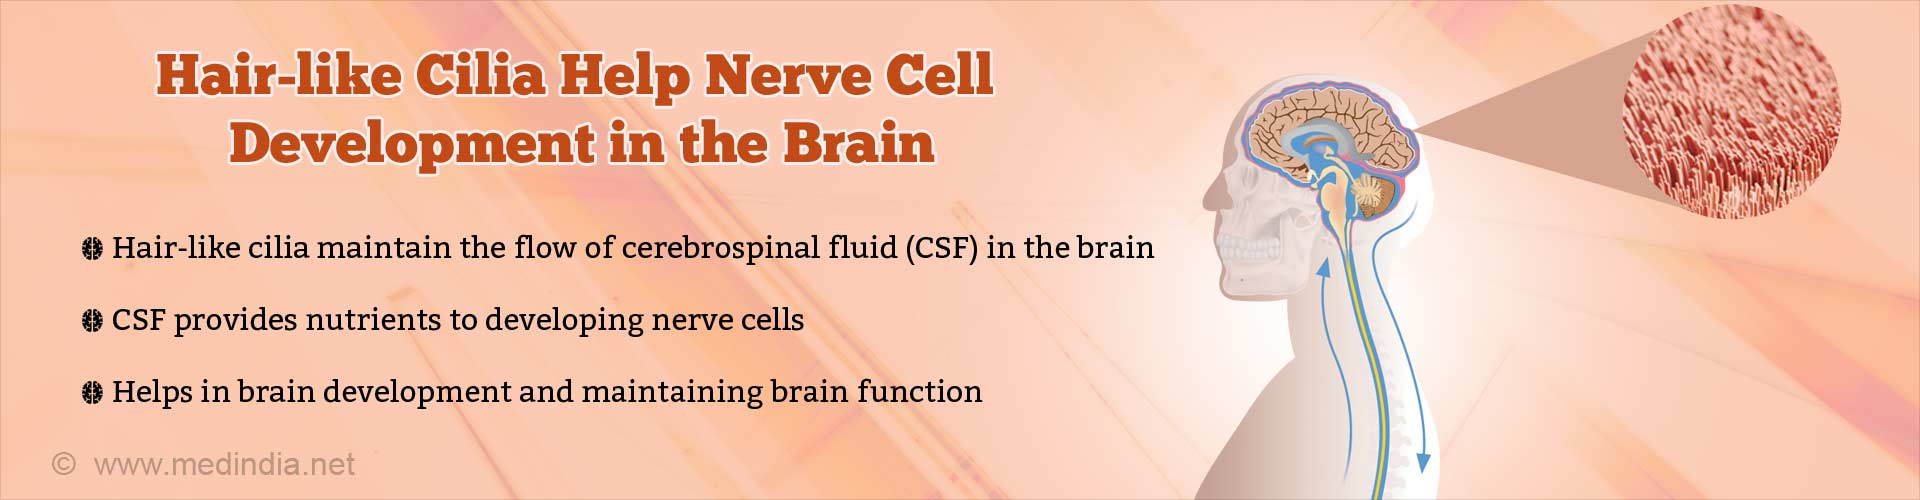 Hair-like cilia help nerve cell development in the brain. Hair-like cilia maintain the flow of cerebrospinal fluid (CSF) in the brain. CSF provides nutrients to developing nerve cells. Helps in brain development and maintaining brain function.